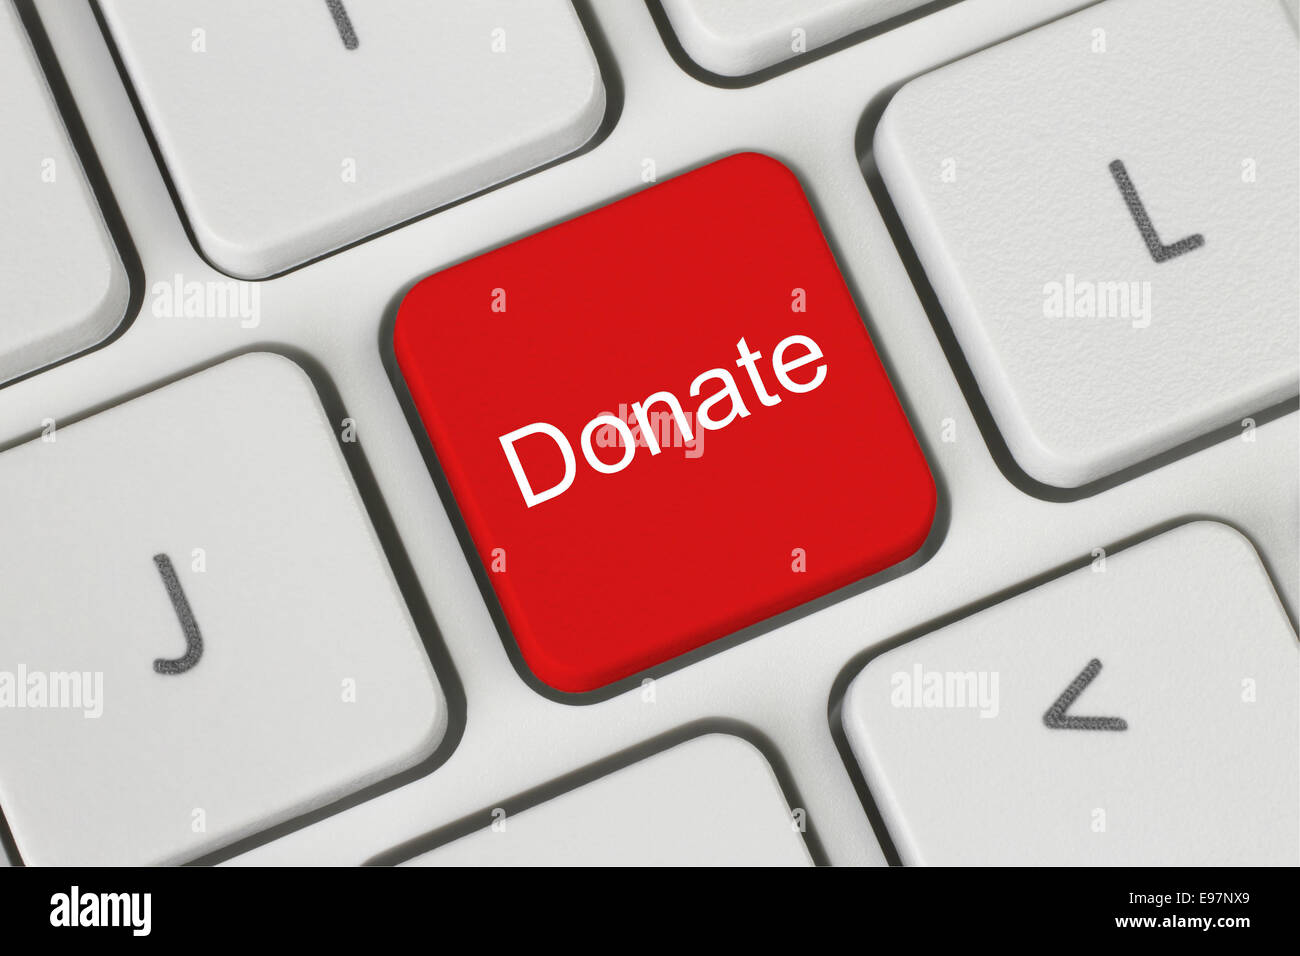 Red donate button on the keyboard close-up - Stock Image